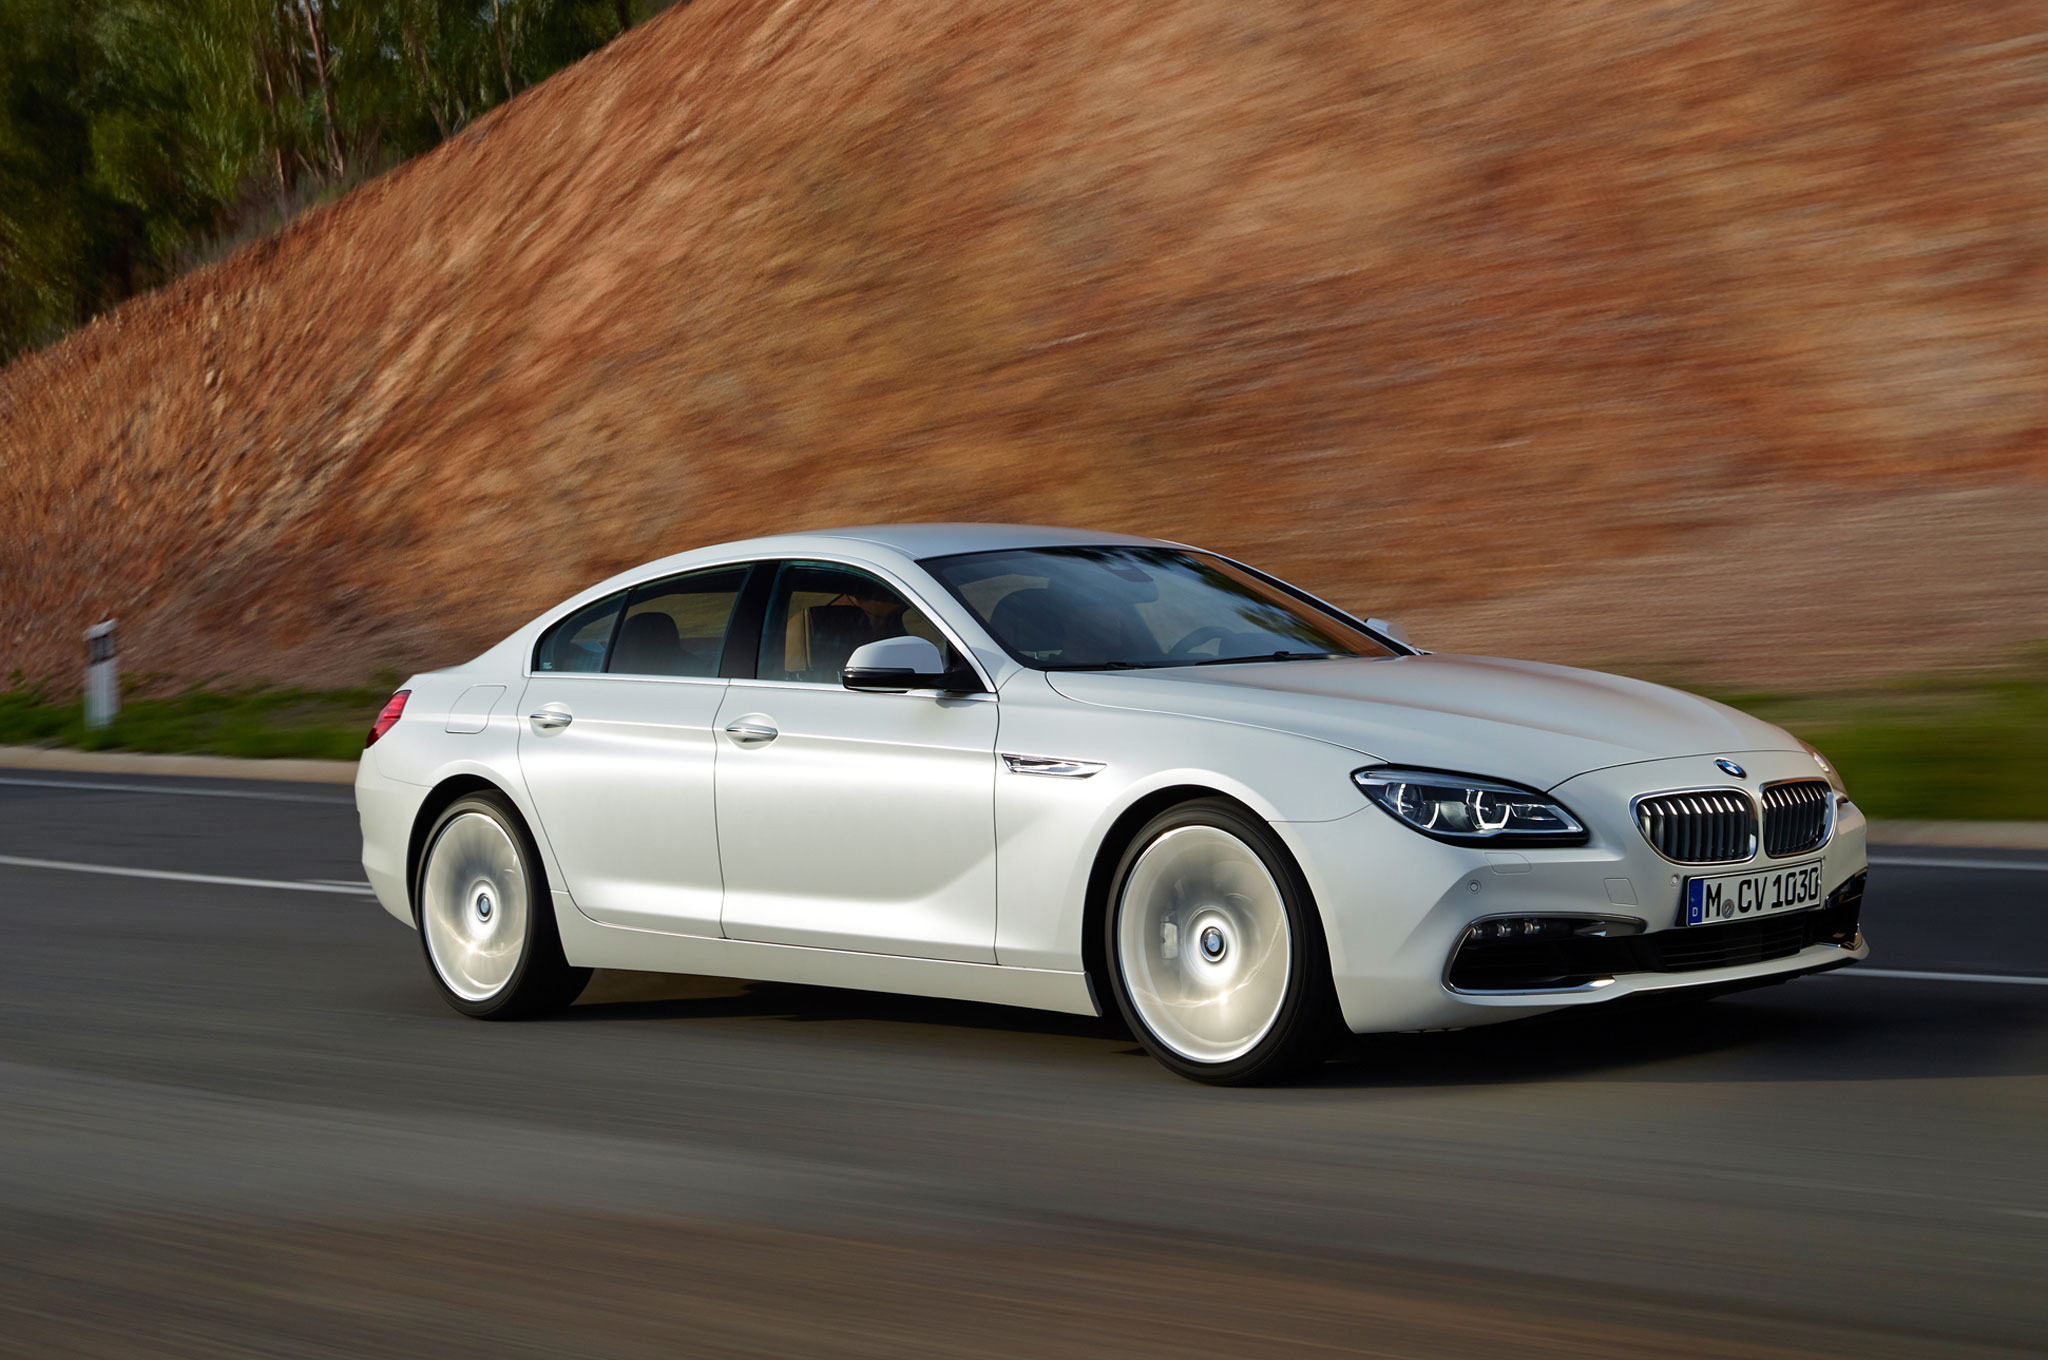 Major Changes To The 2016 Bmw 6 Series Begin With Restyled Kidney Grilles Which